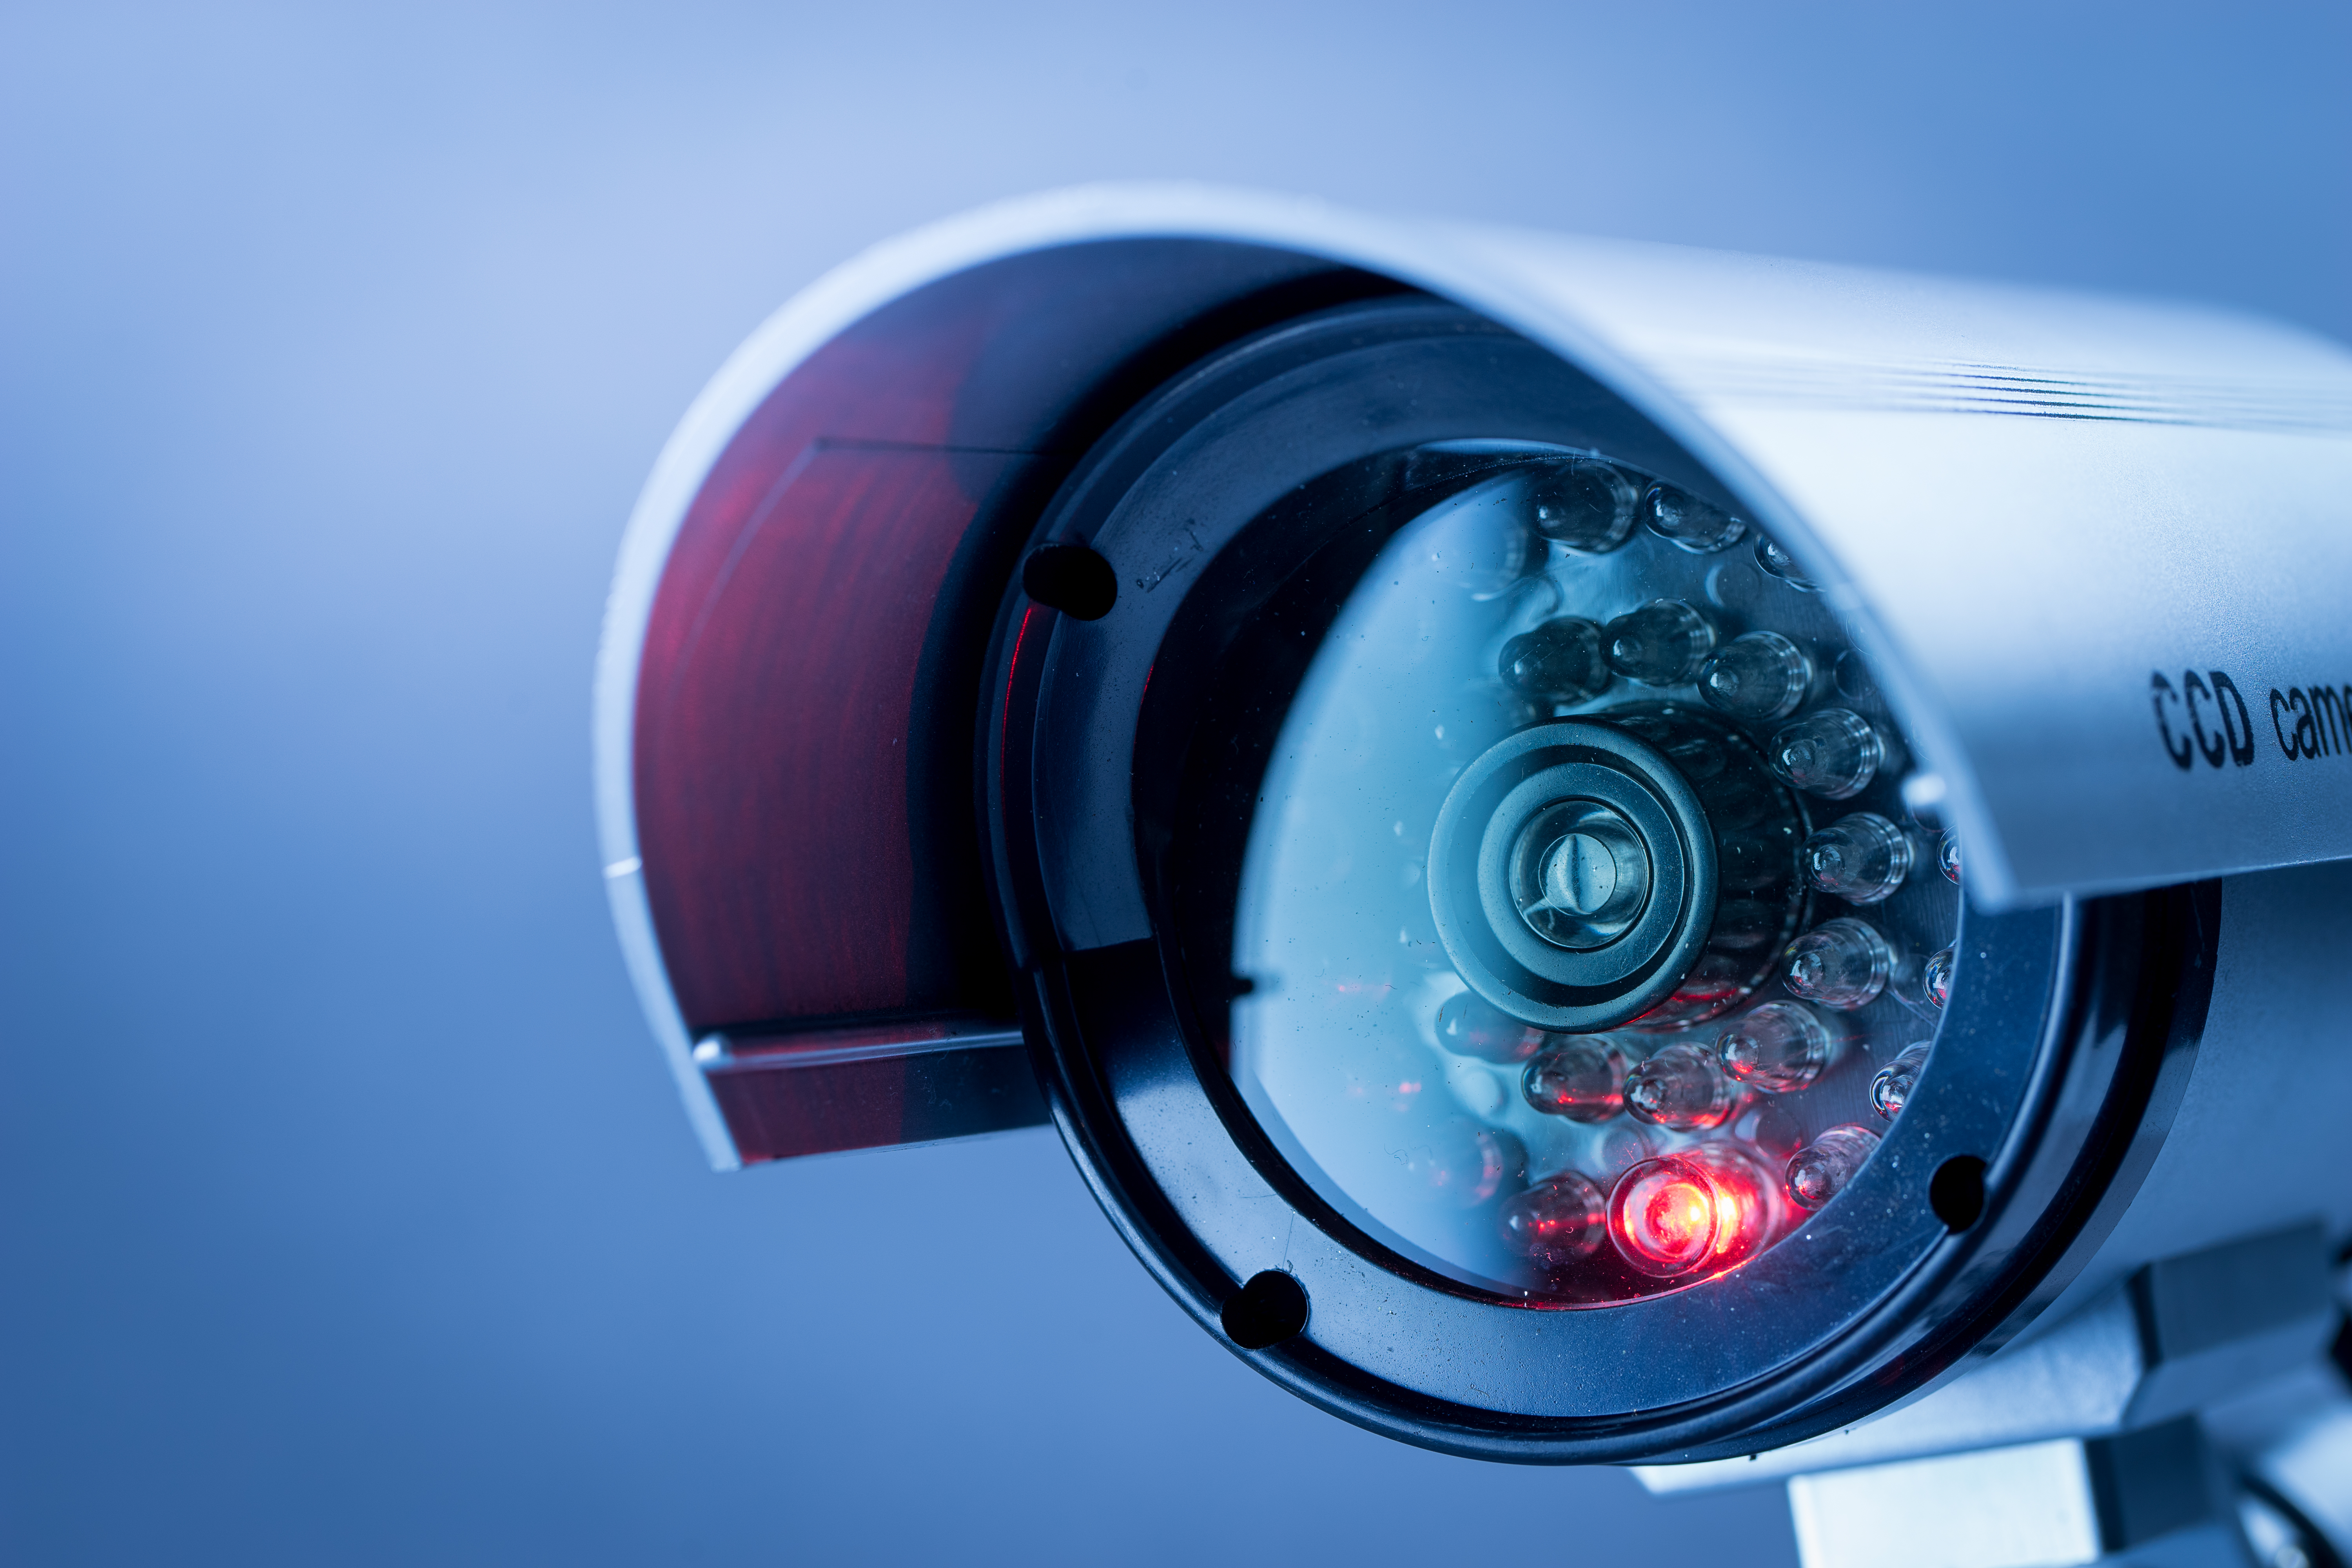 home security systems with security cameras from stat communications near syracuse ny and watertown ny